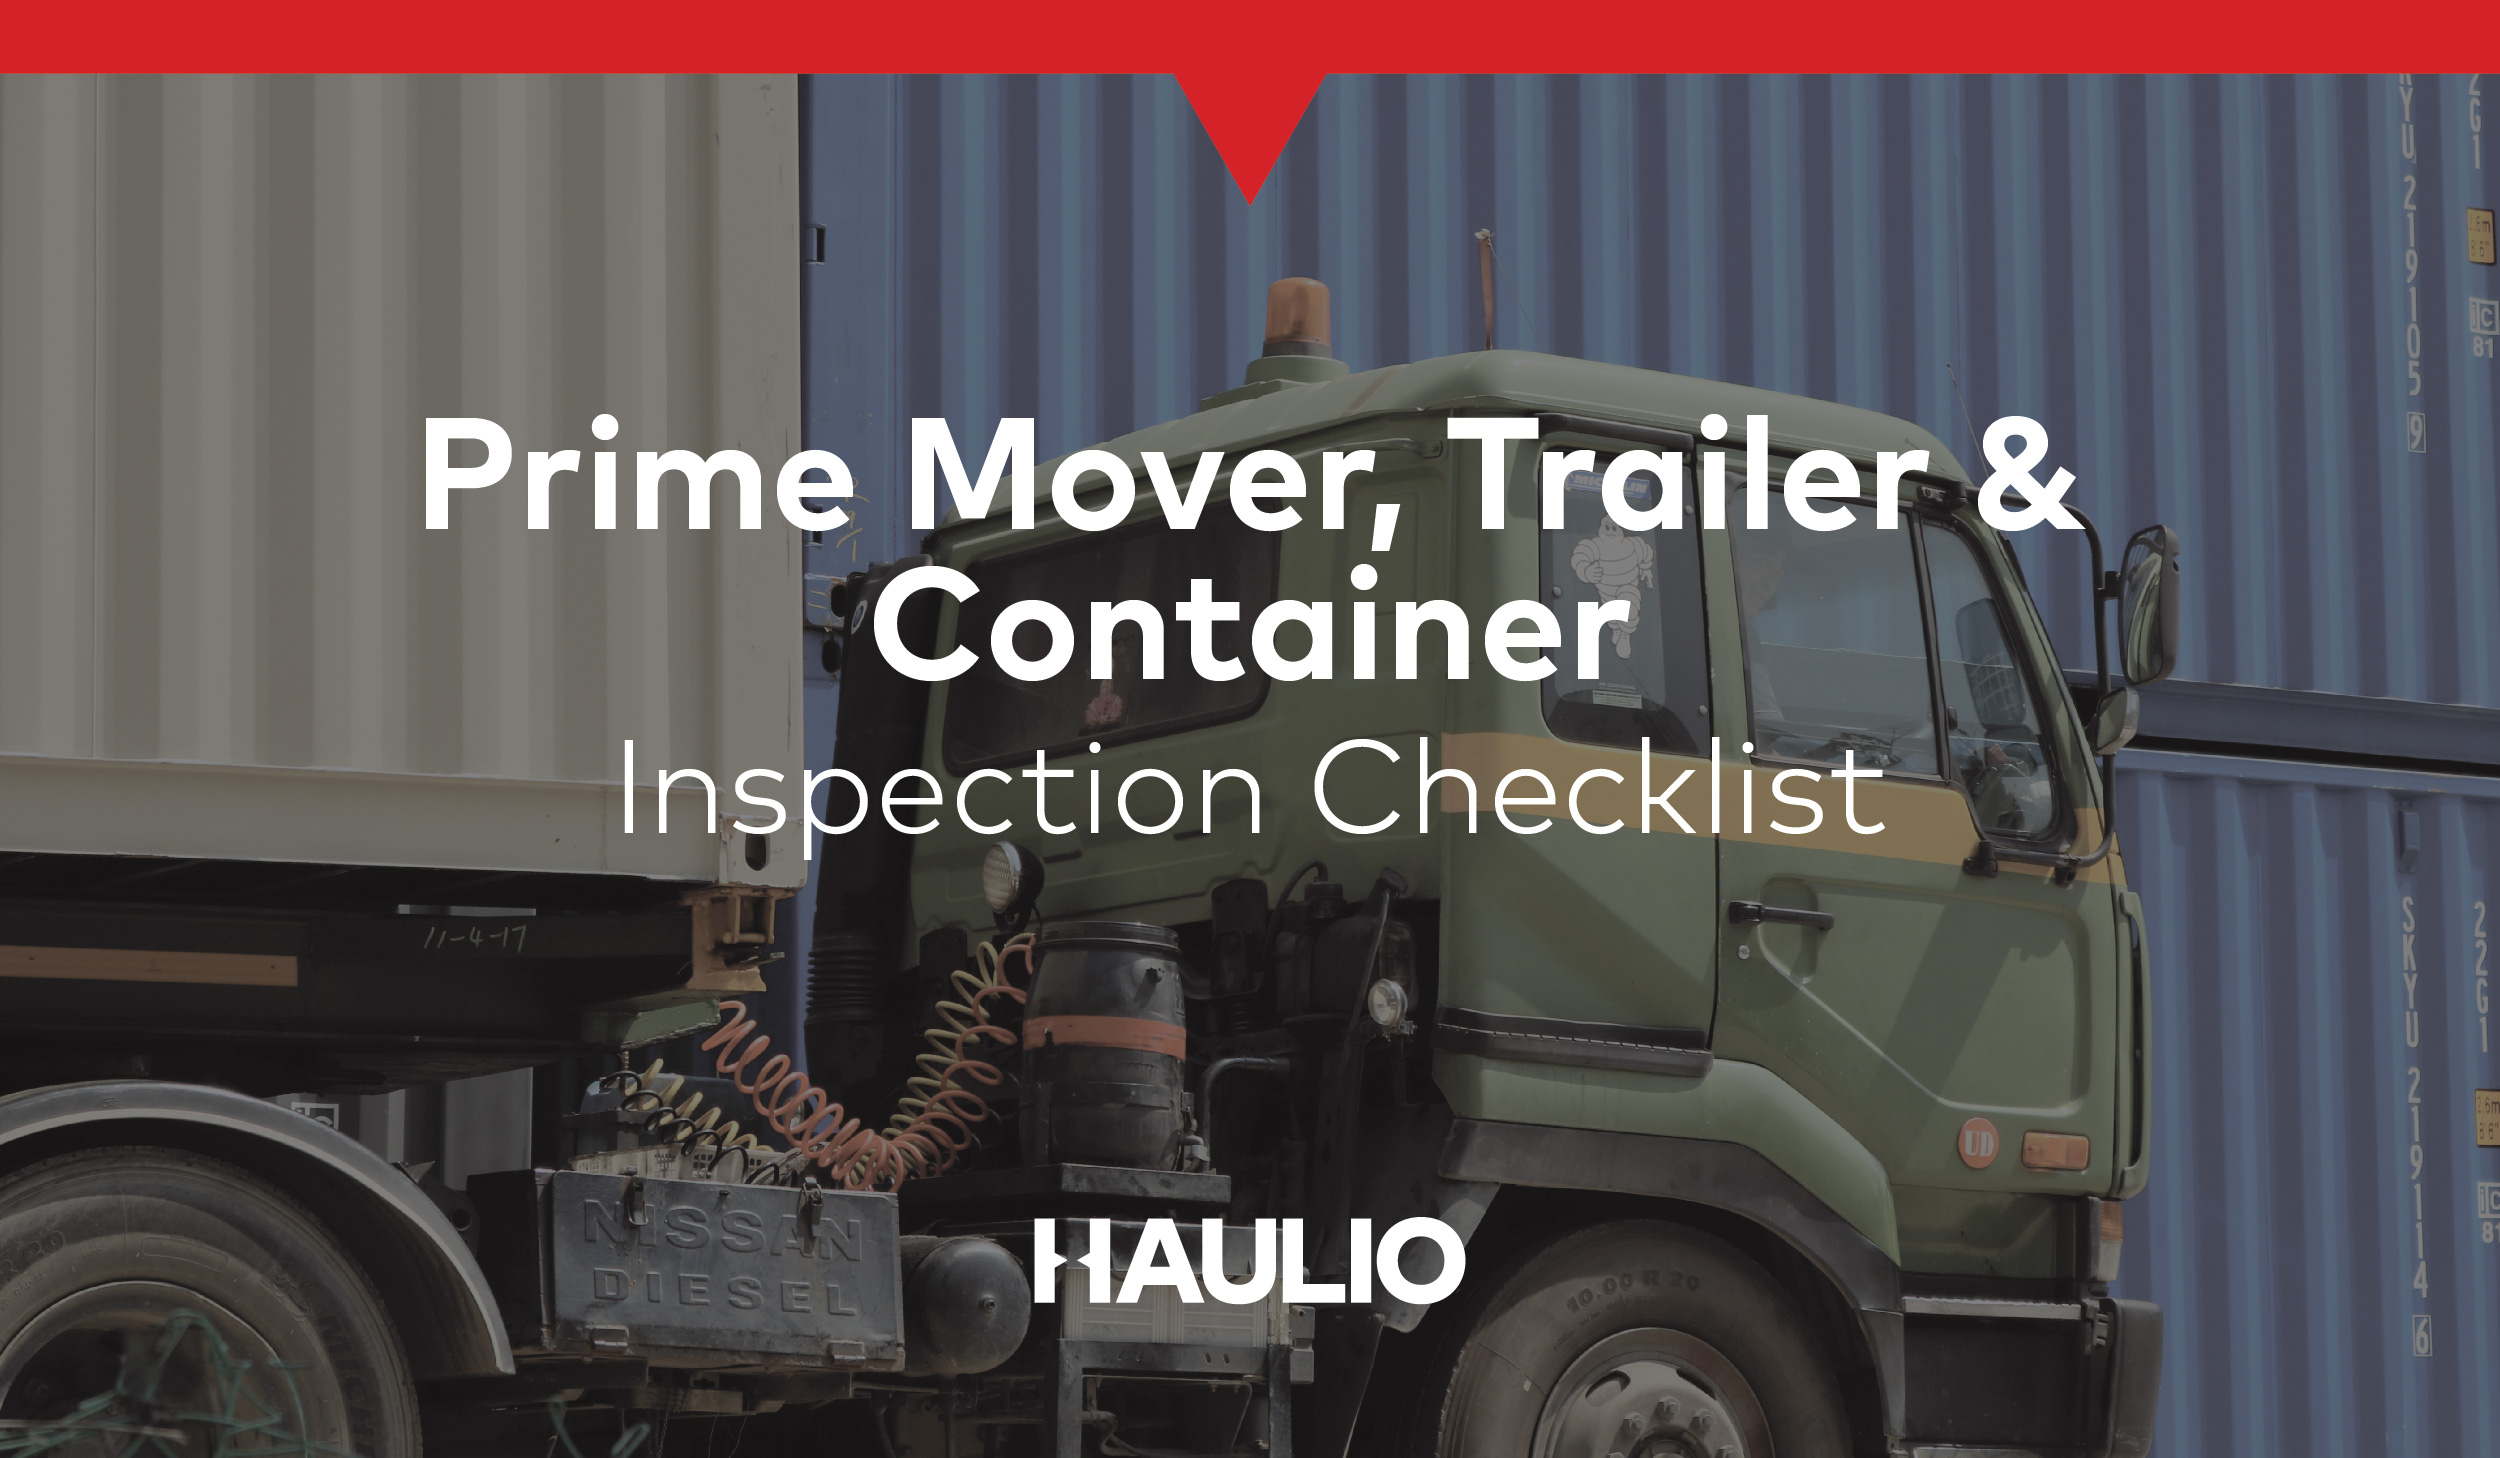 Prime Mover, Trailer & Container Inspection Checklist